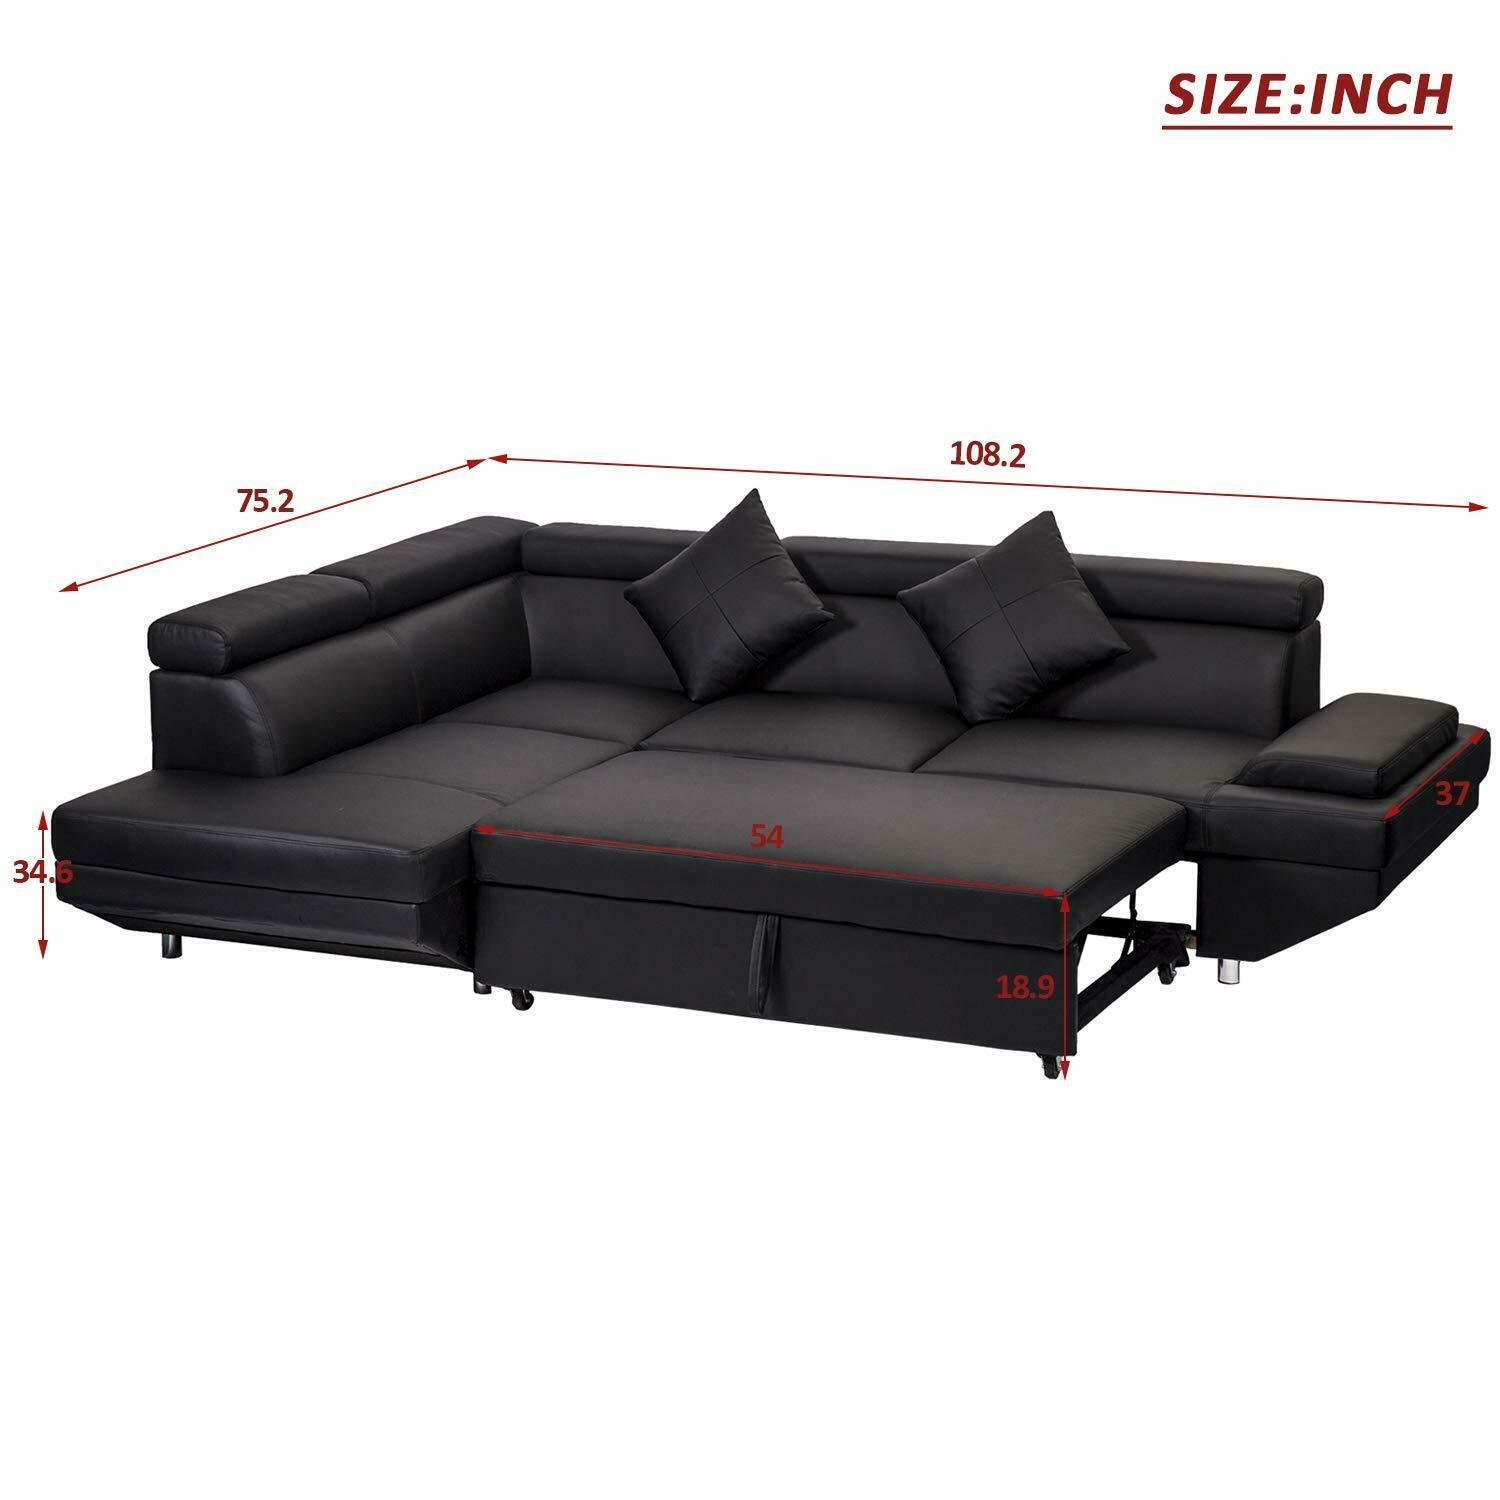 Details about Contemporary Sectional Modern Sofa Bed - Black with  Functional Armrest / Back L